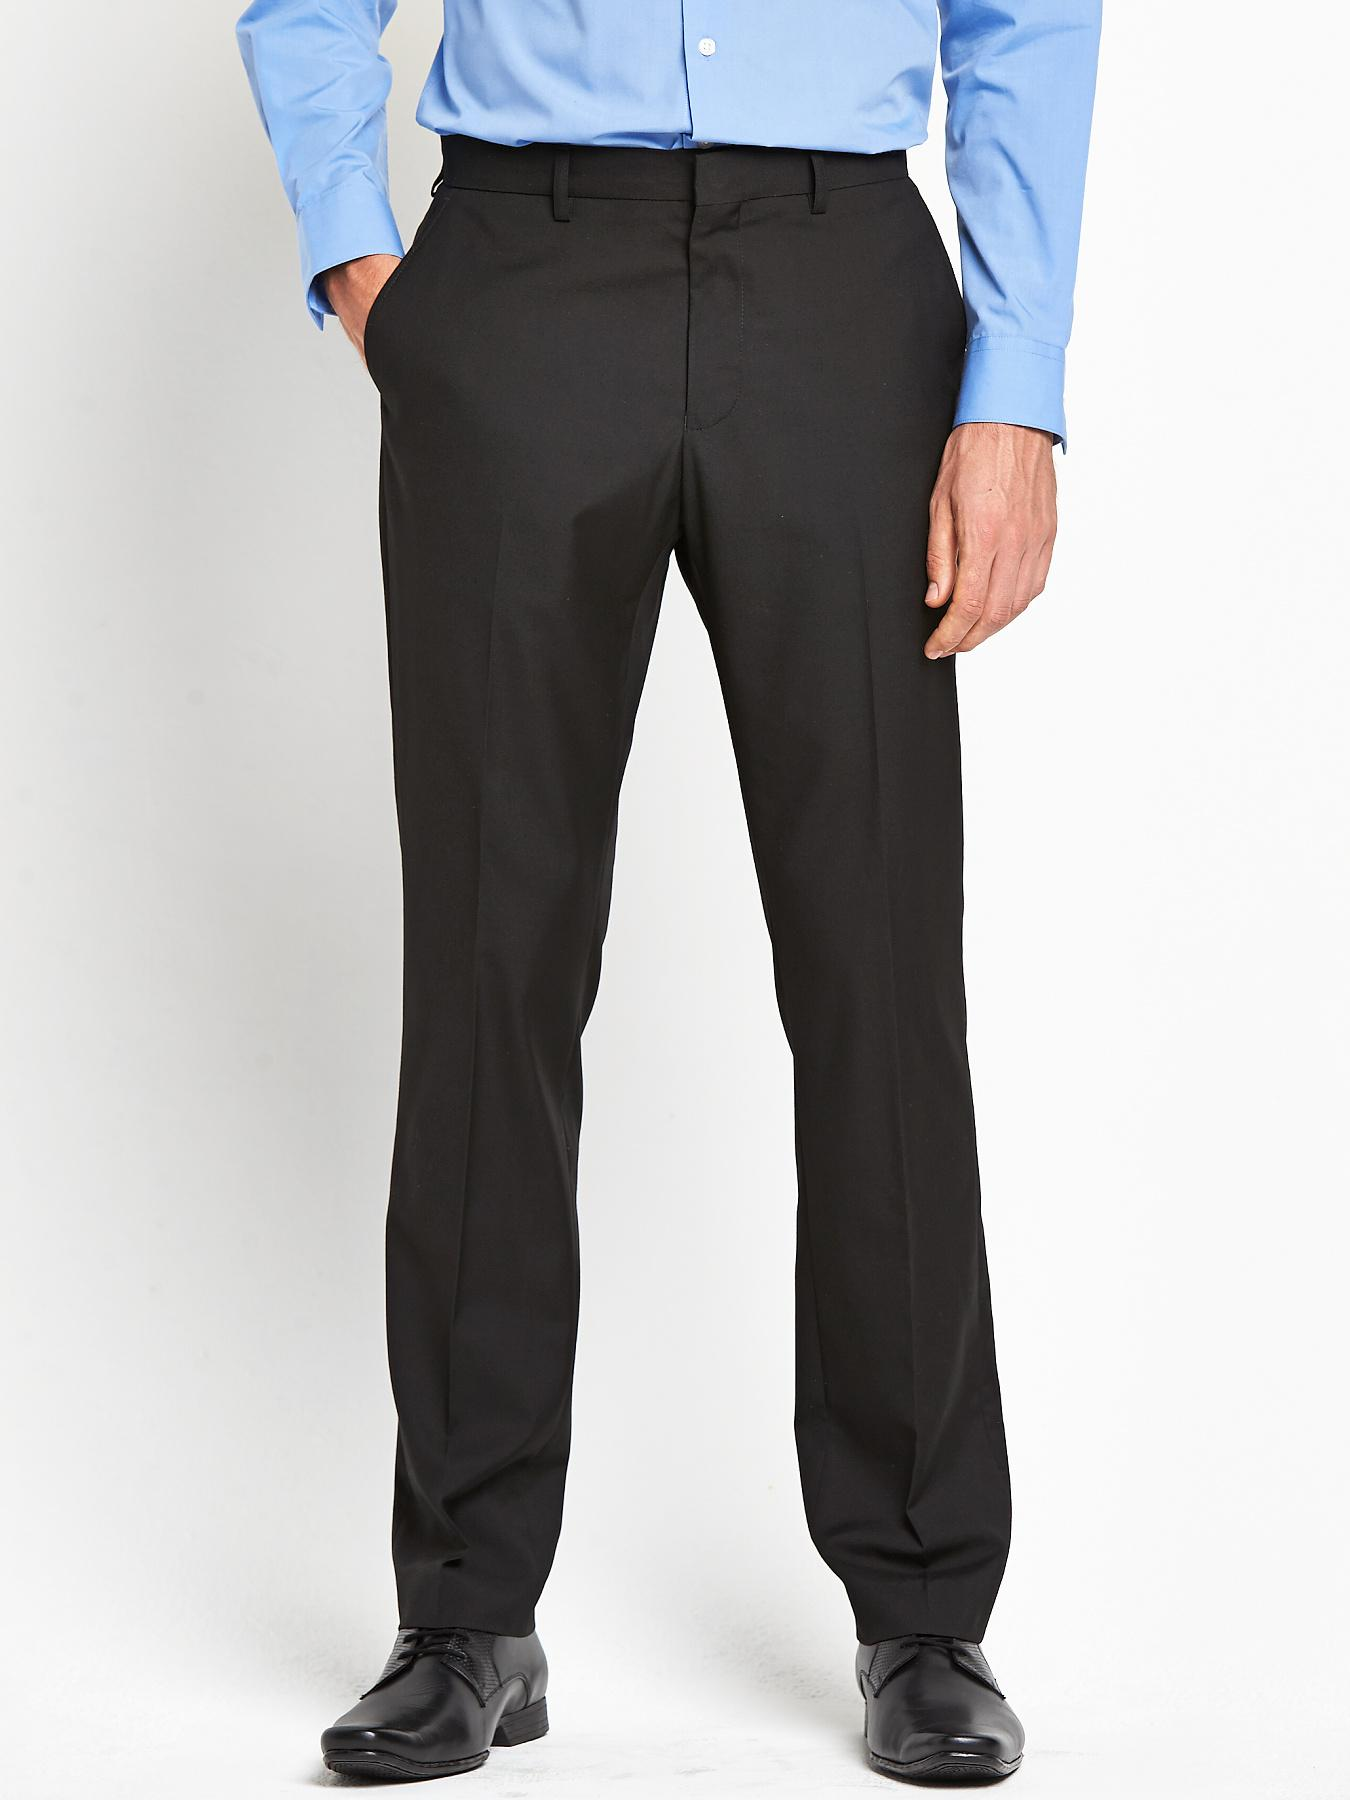 Mens Tailored Suit Trousers - Black, Black